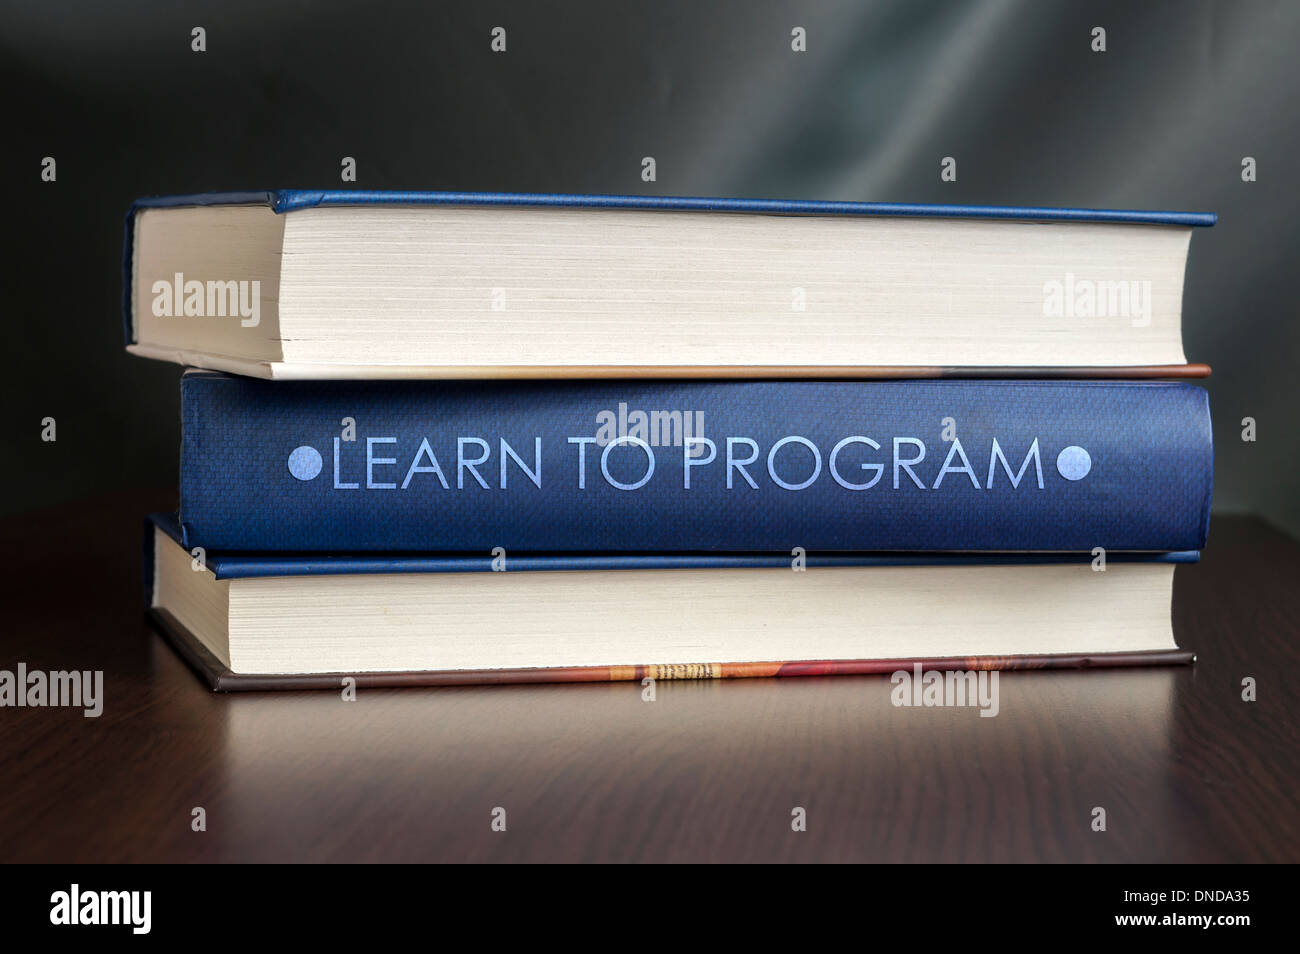 Software Engineering Programming Books Stock Photos